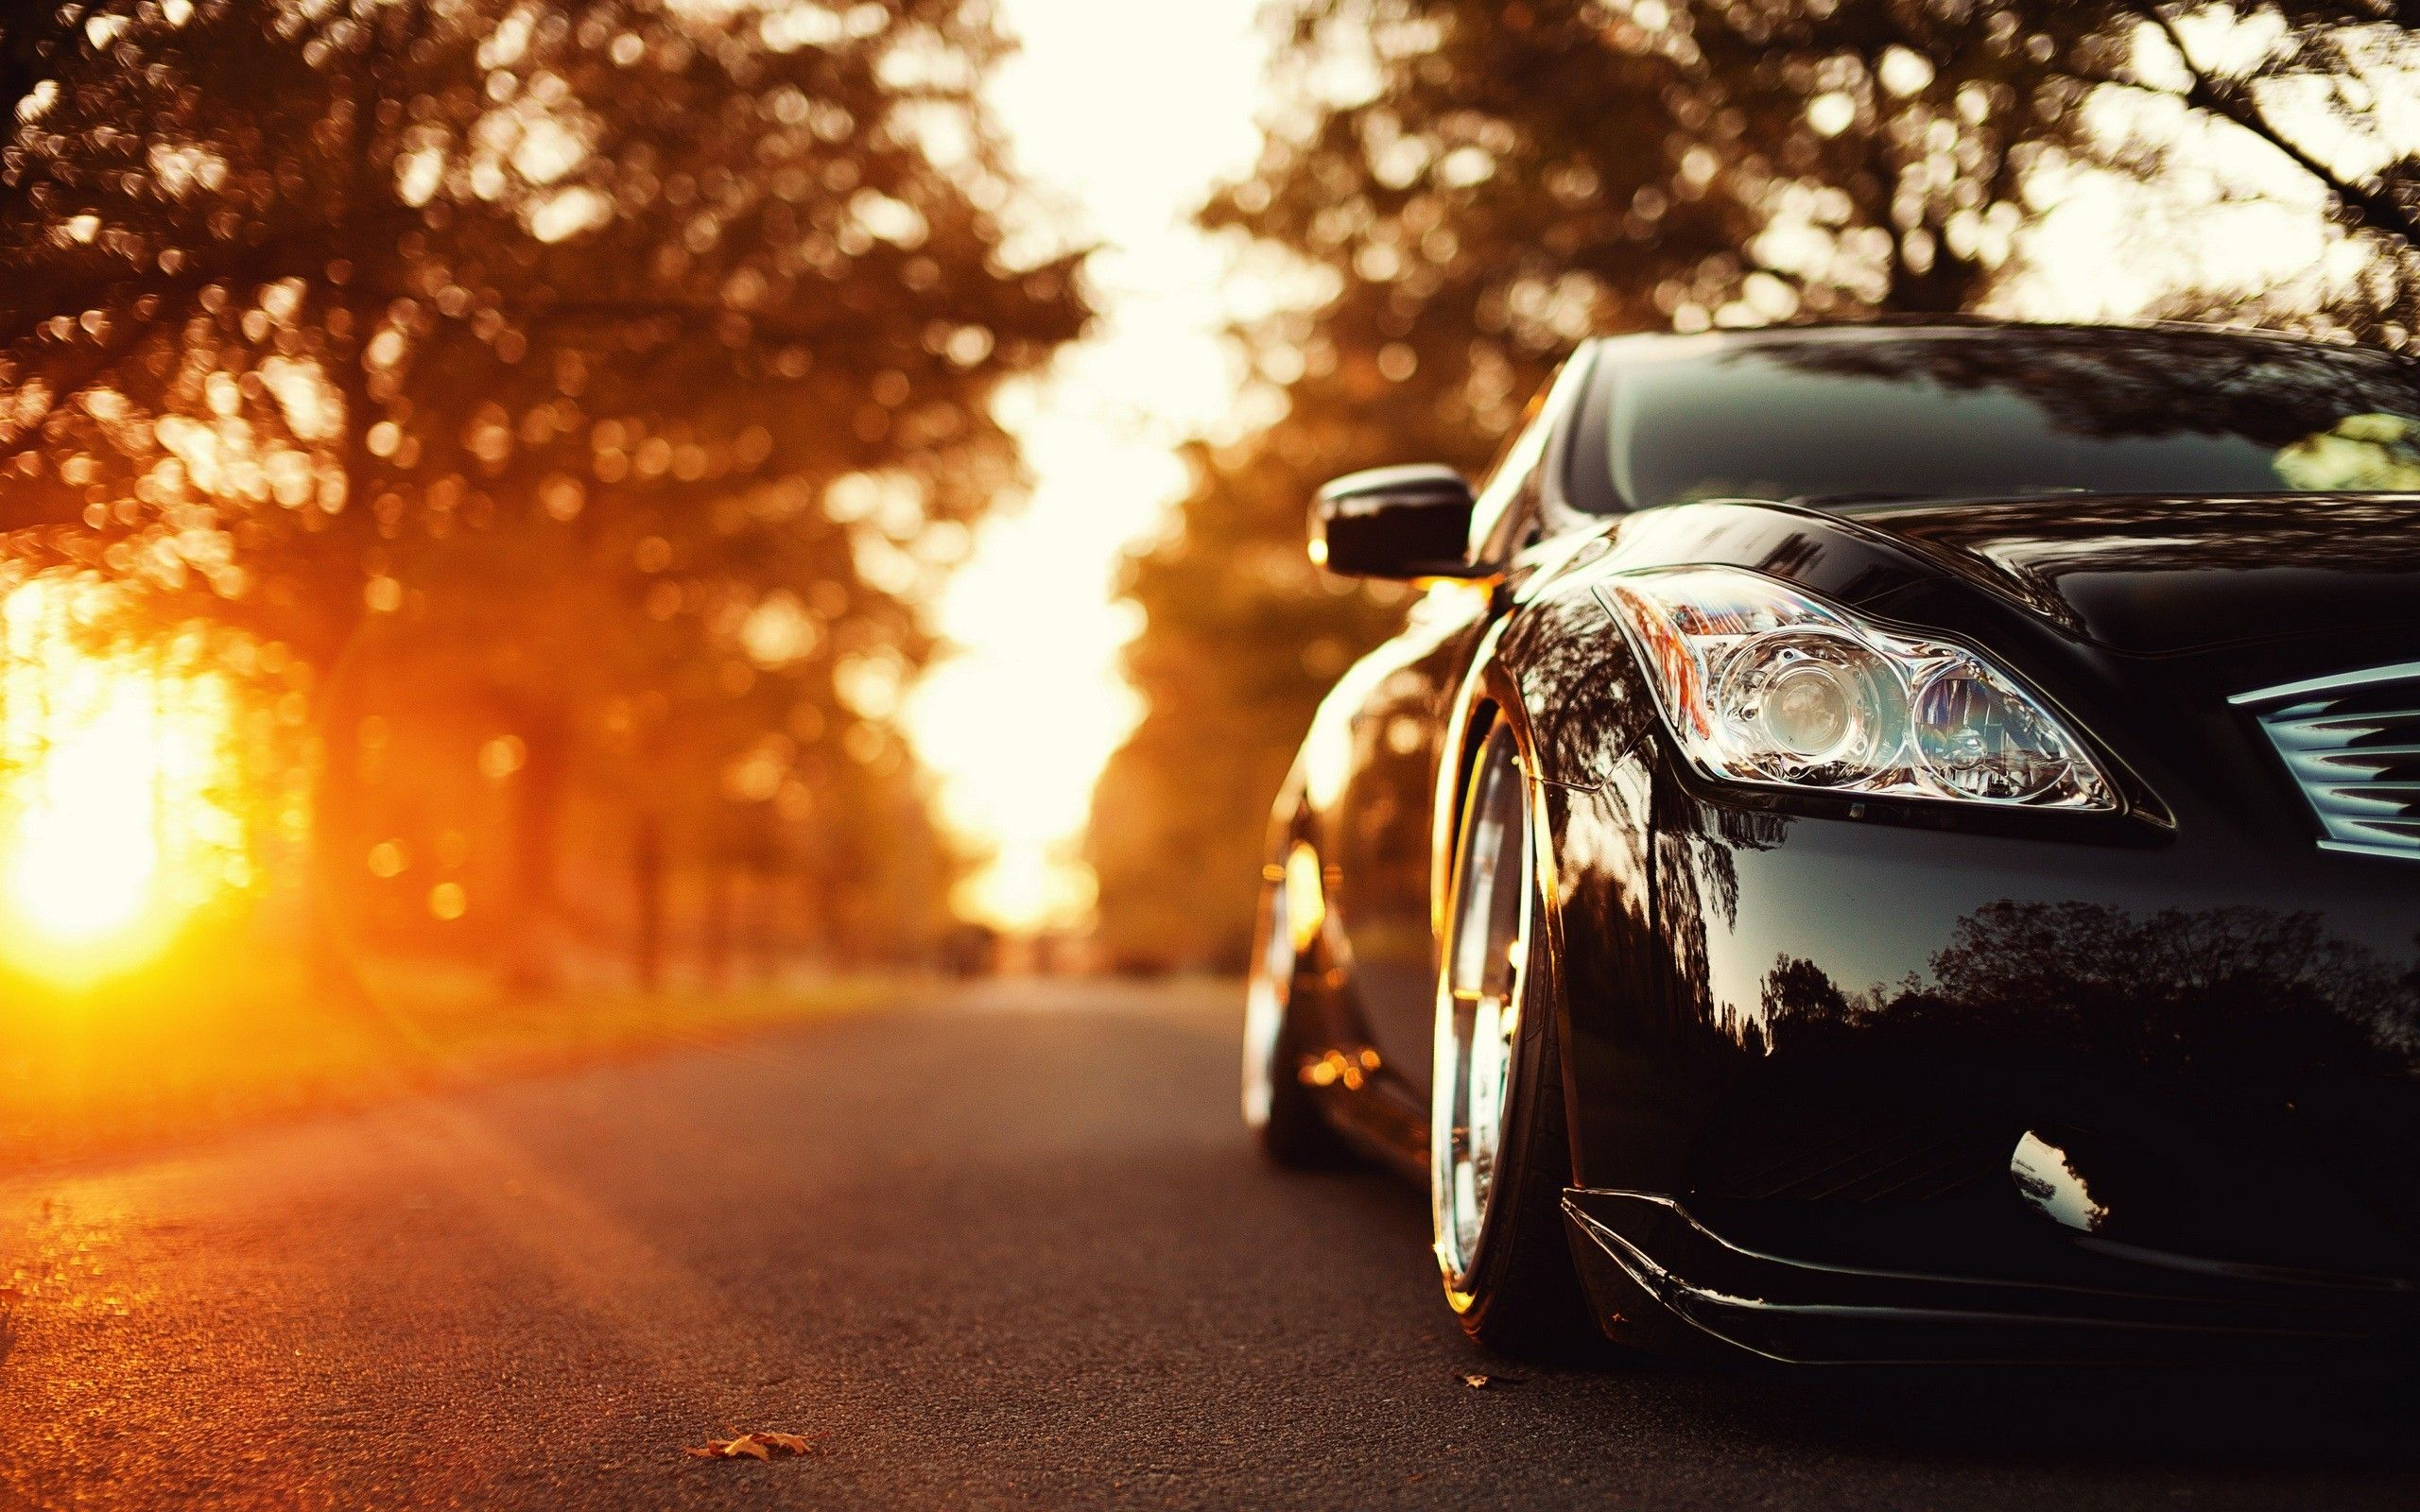 Black Shiny Car In The Sunshine Hd Autumn Season Cars And Other